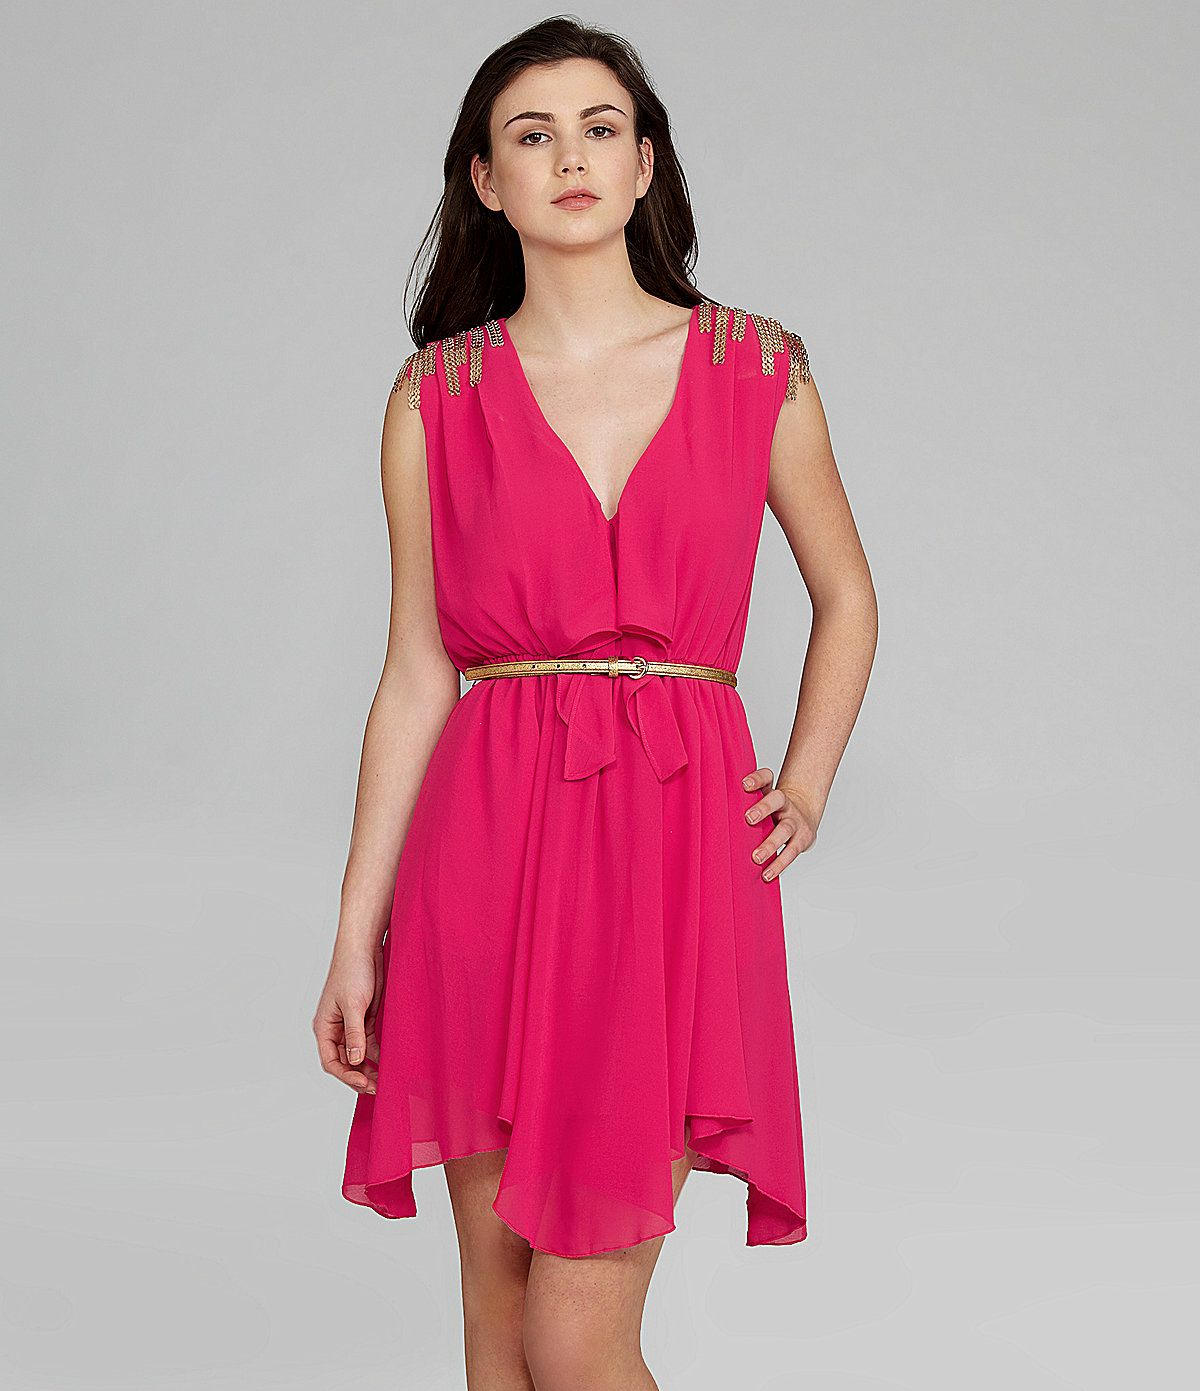 Xoxo vneck belted dress dillards outfits pinterest